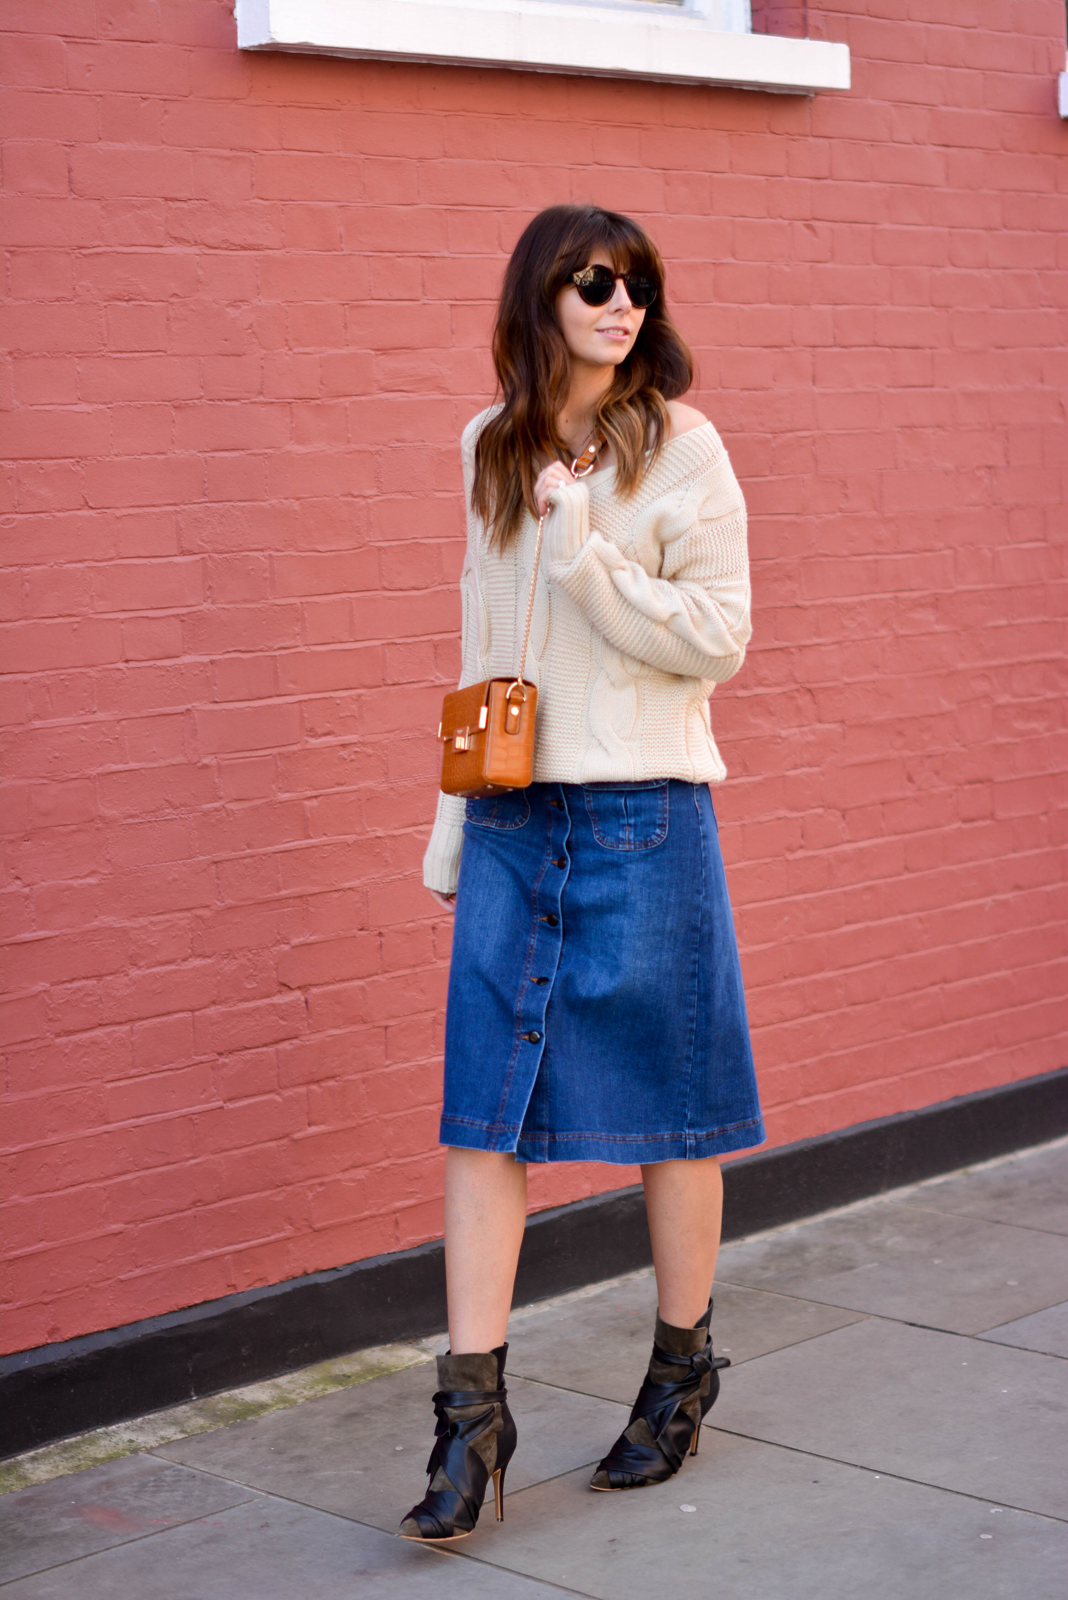 EJSTYLE - Emma Hill, 70's style, london street style, LFW AW15, M&S denim a line skirt, off shoulder cable knit jumper, isabel marant khaki ankle boots, Dune box bag tan, fashion blogger